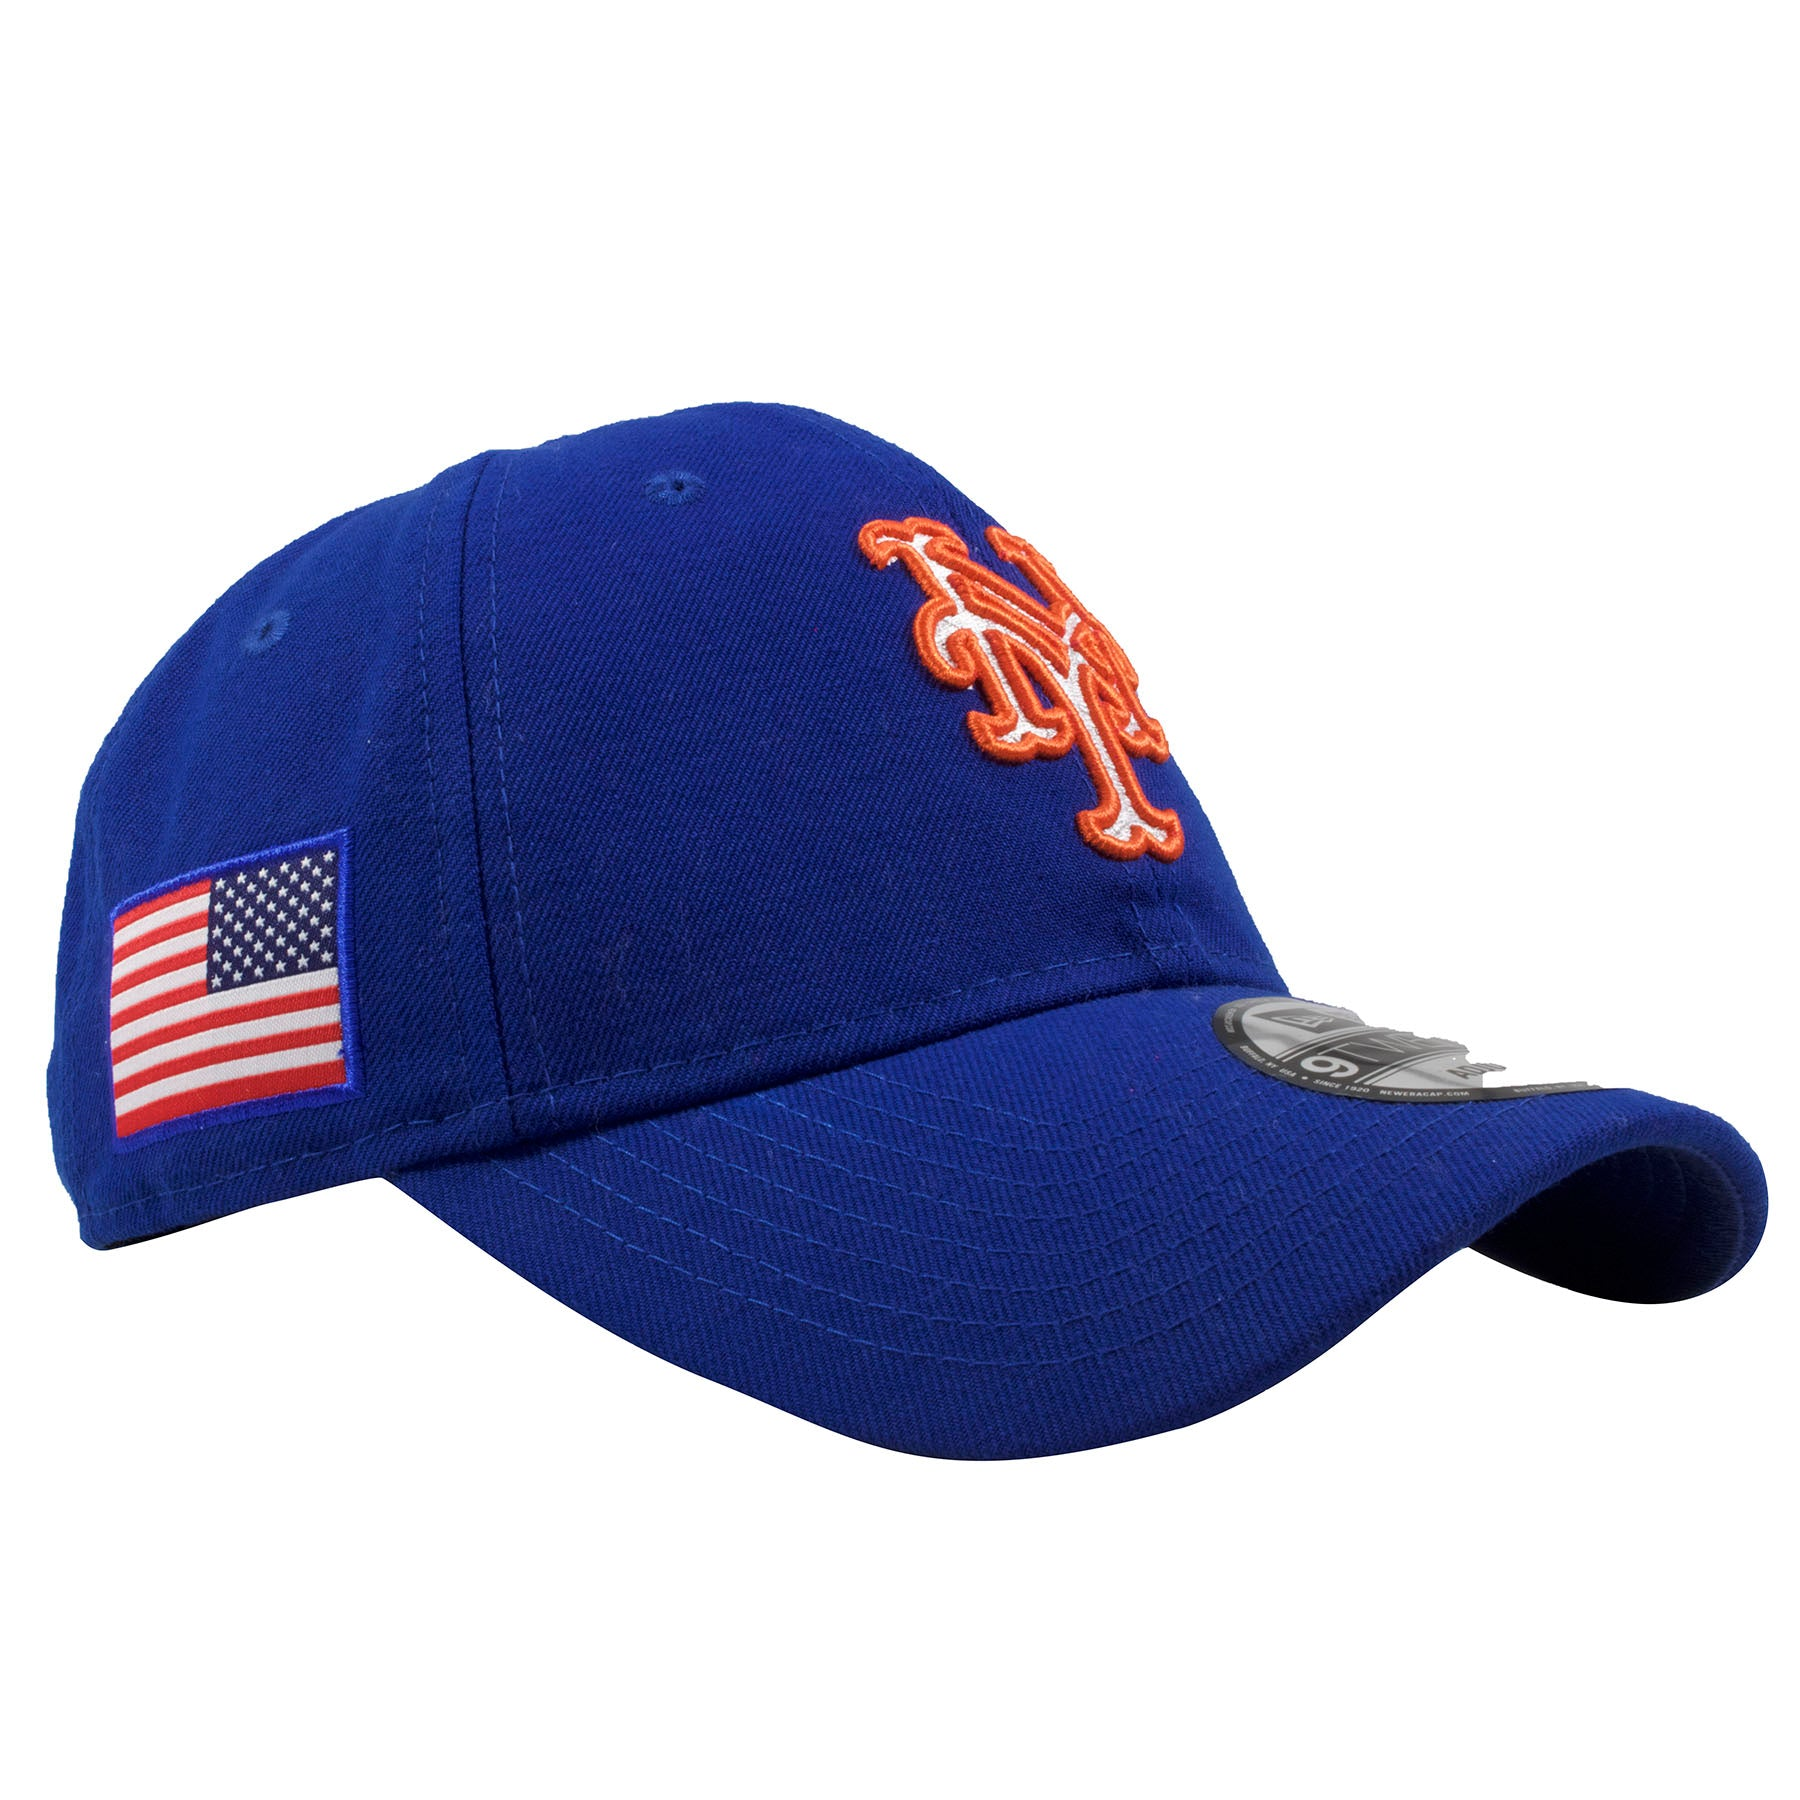 8d46a91c260 ... The right side of the New York Mets adjustable dad hat features the USA  flag embroidered ...